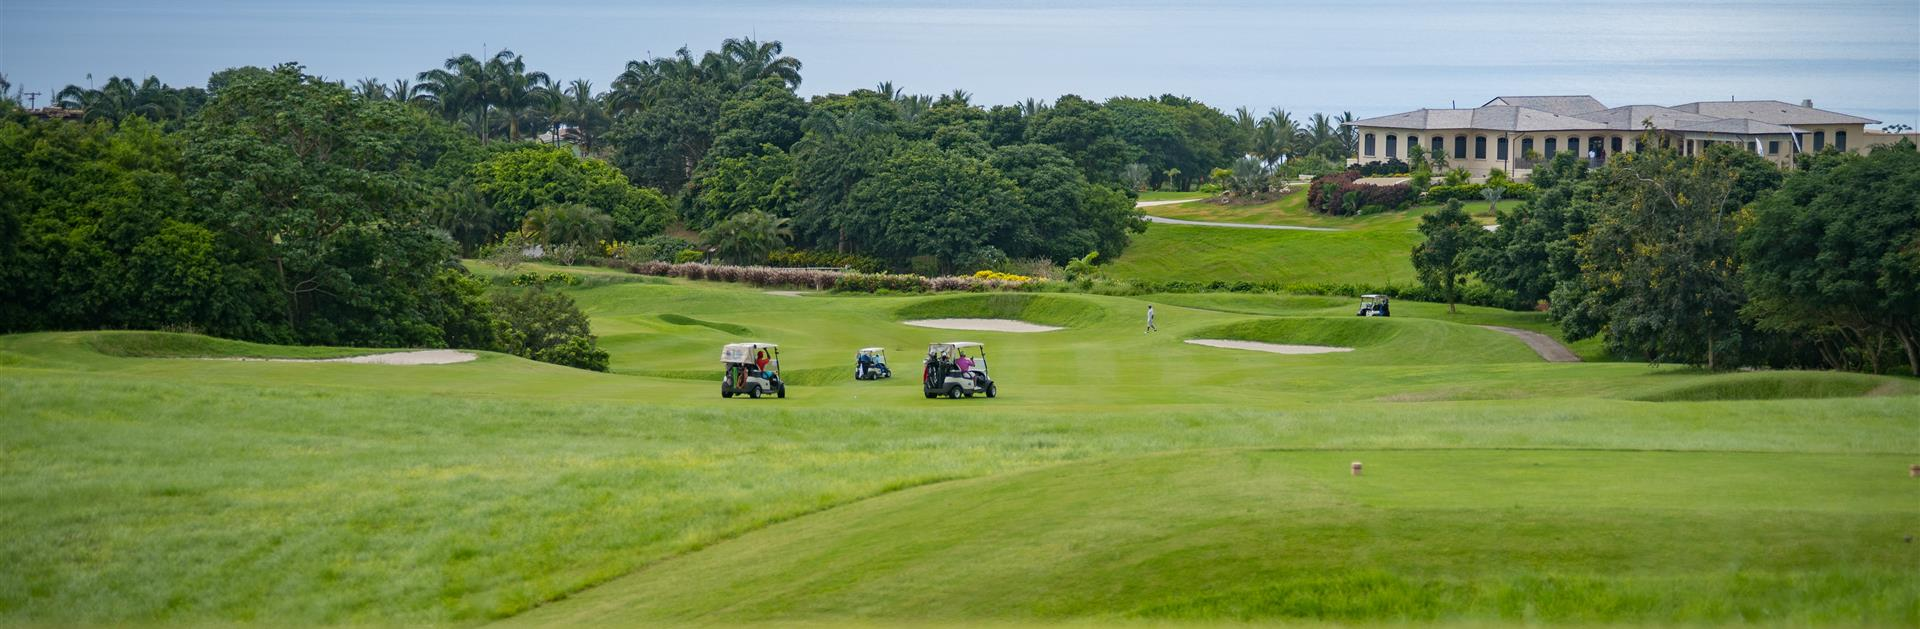 Excursion de jazz et tournoi de golf à la Barbade